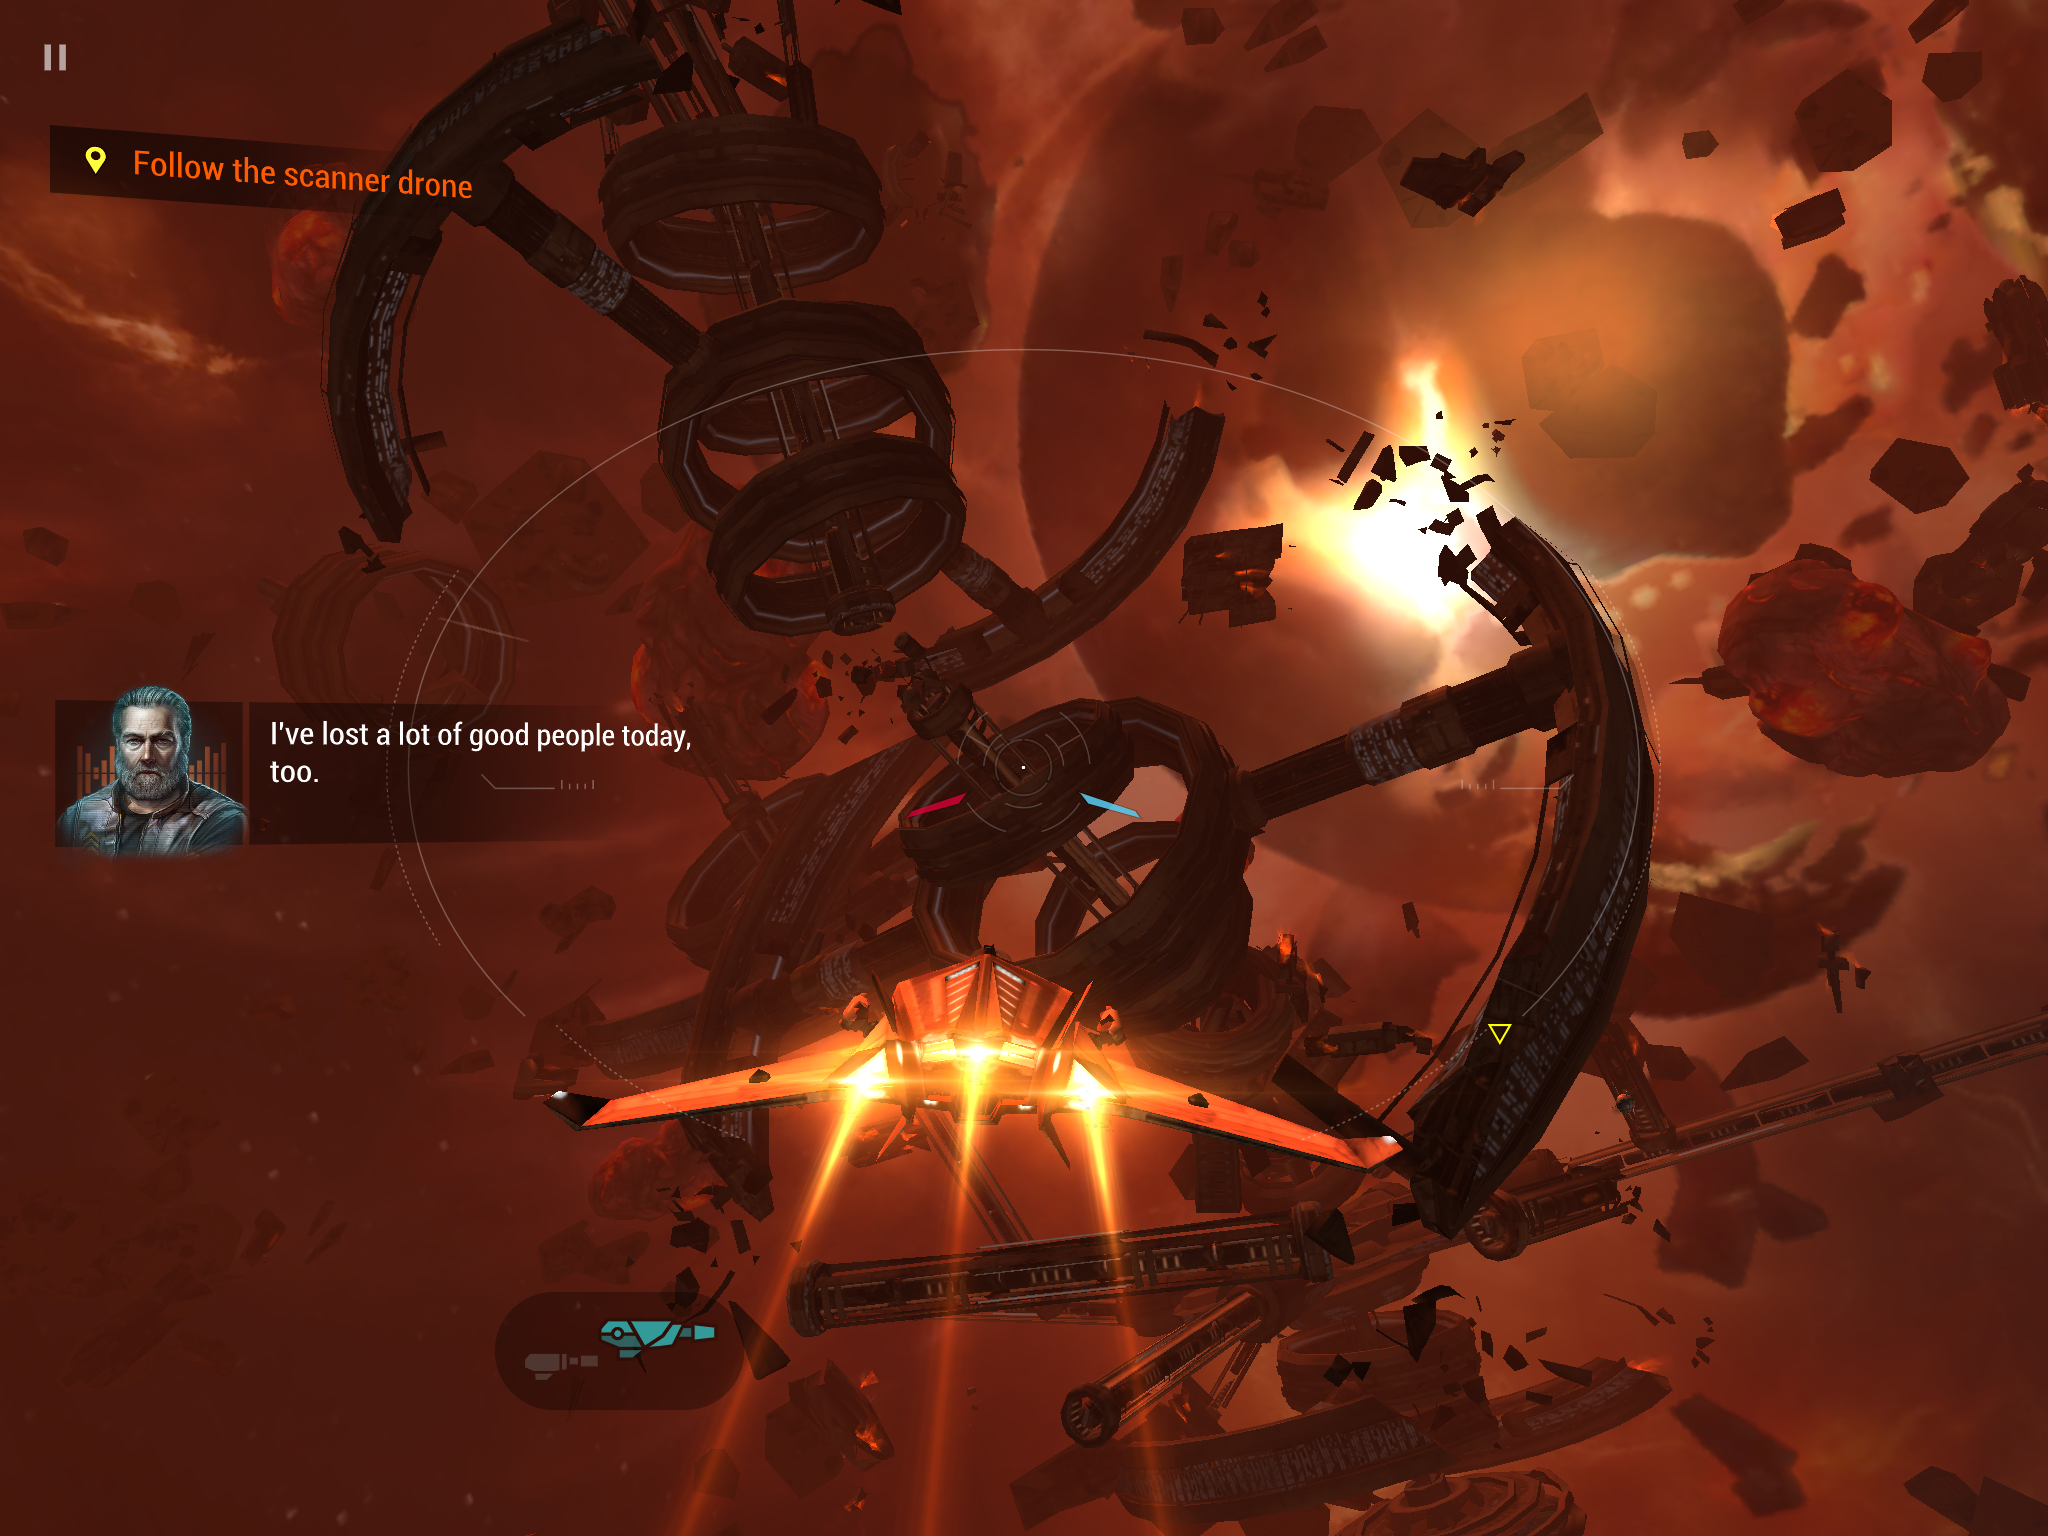 Galaxy on Fire 3 - Manticore review - A space shooter with an awful lot going for it